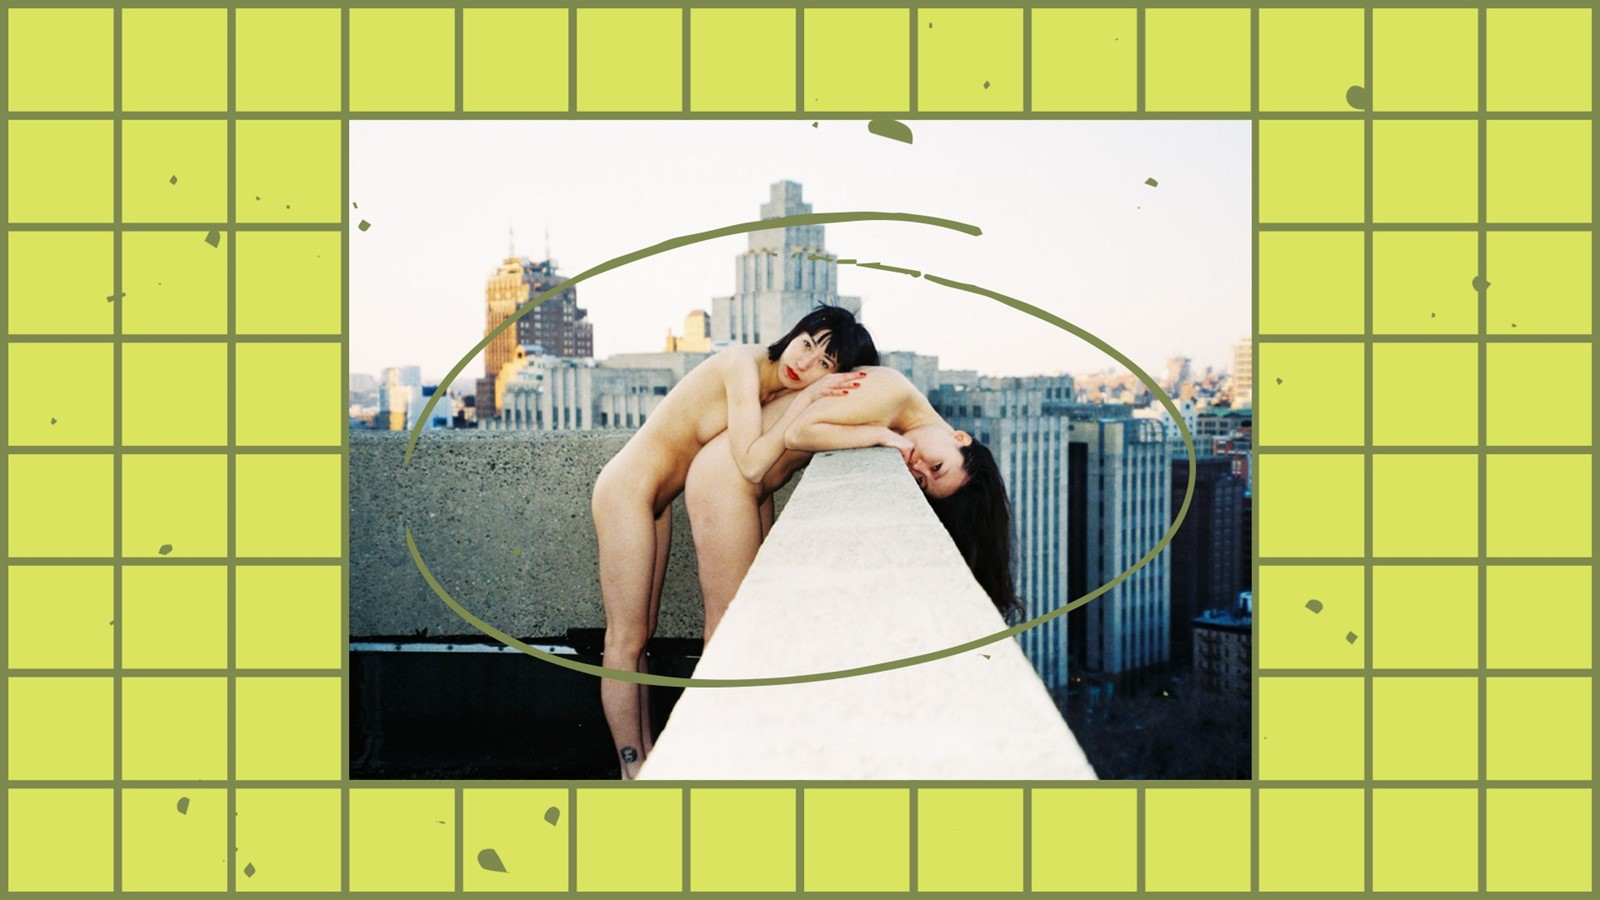 Photographer Ren Hang captured beauty amongst the ugliness of the 2010s